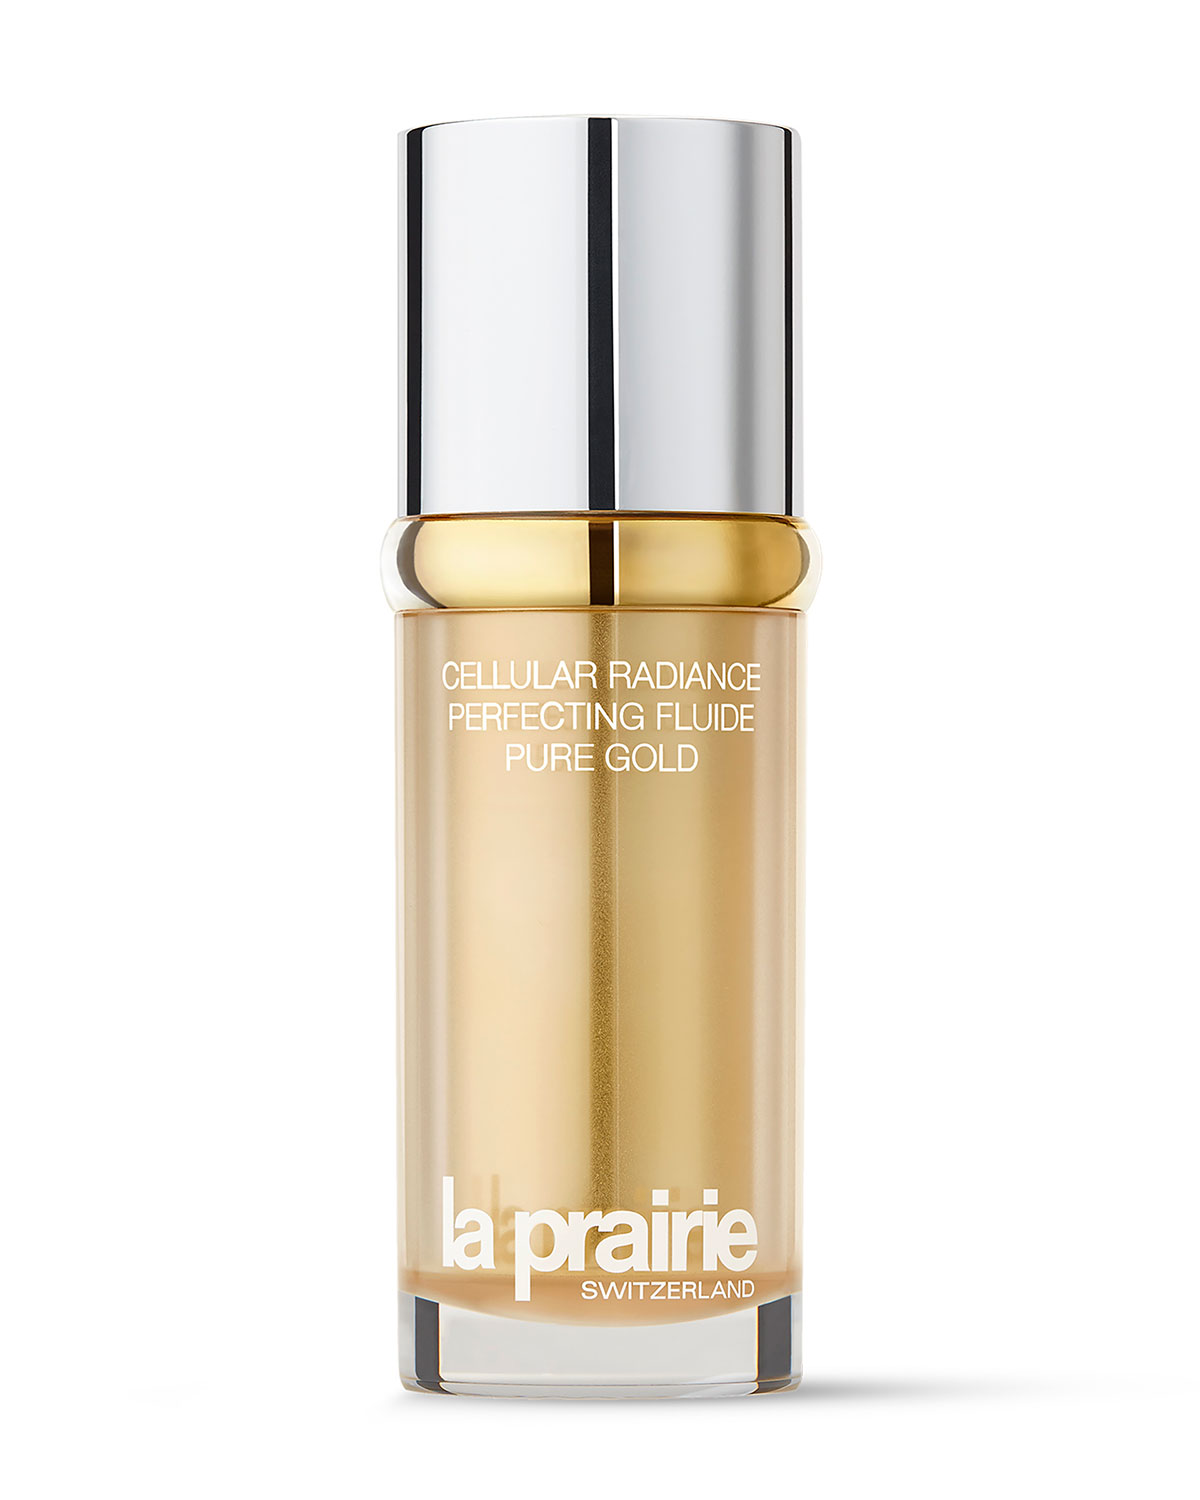 Cellular Radiance Perfecting Fluide Pure Gold, 1.4 oz. - La Prairie